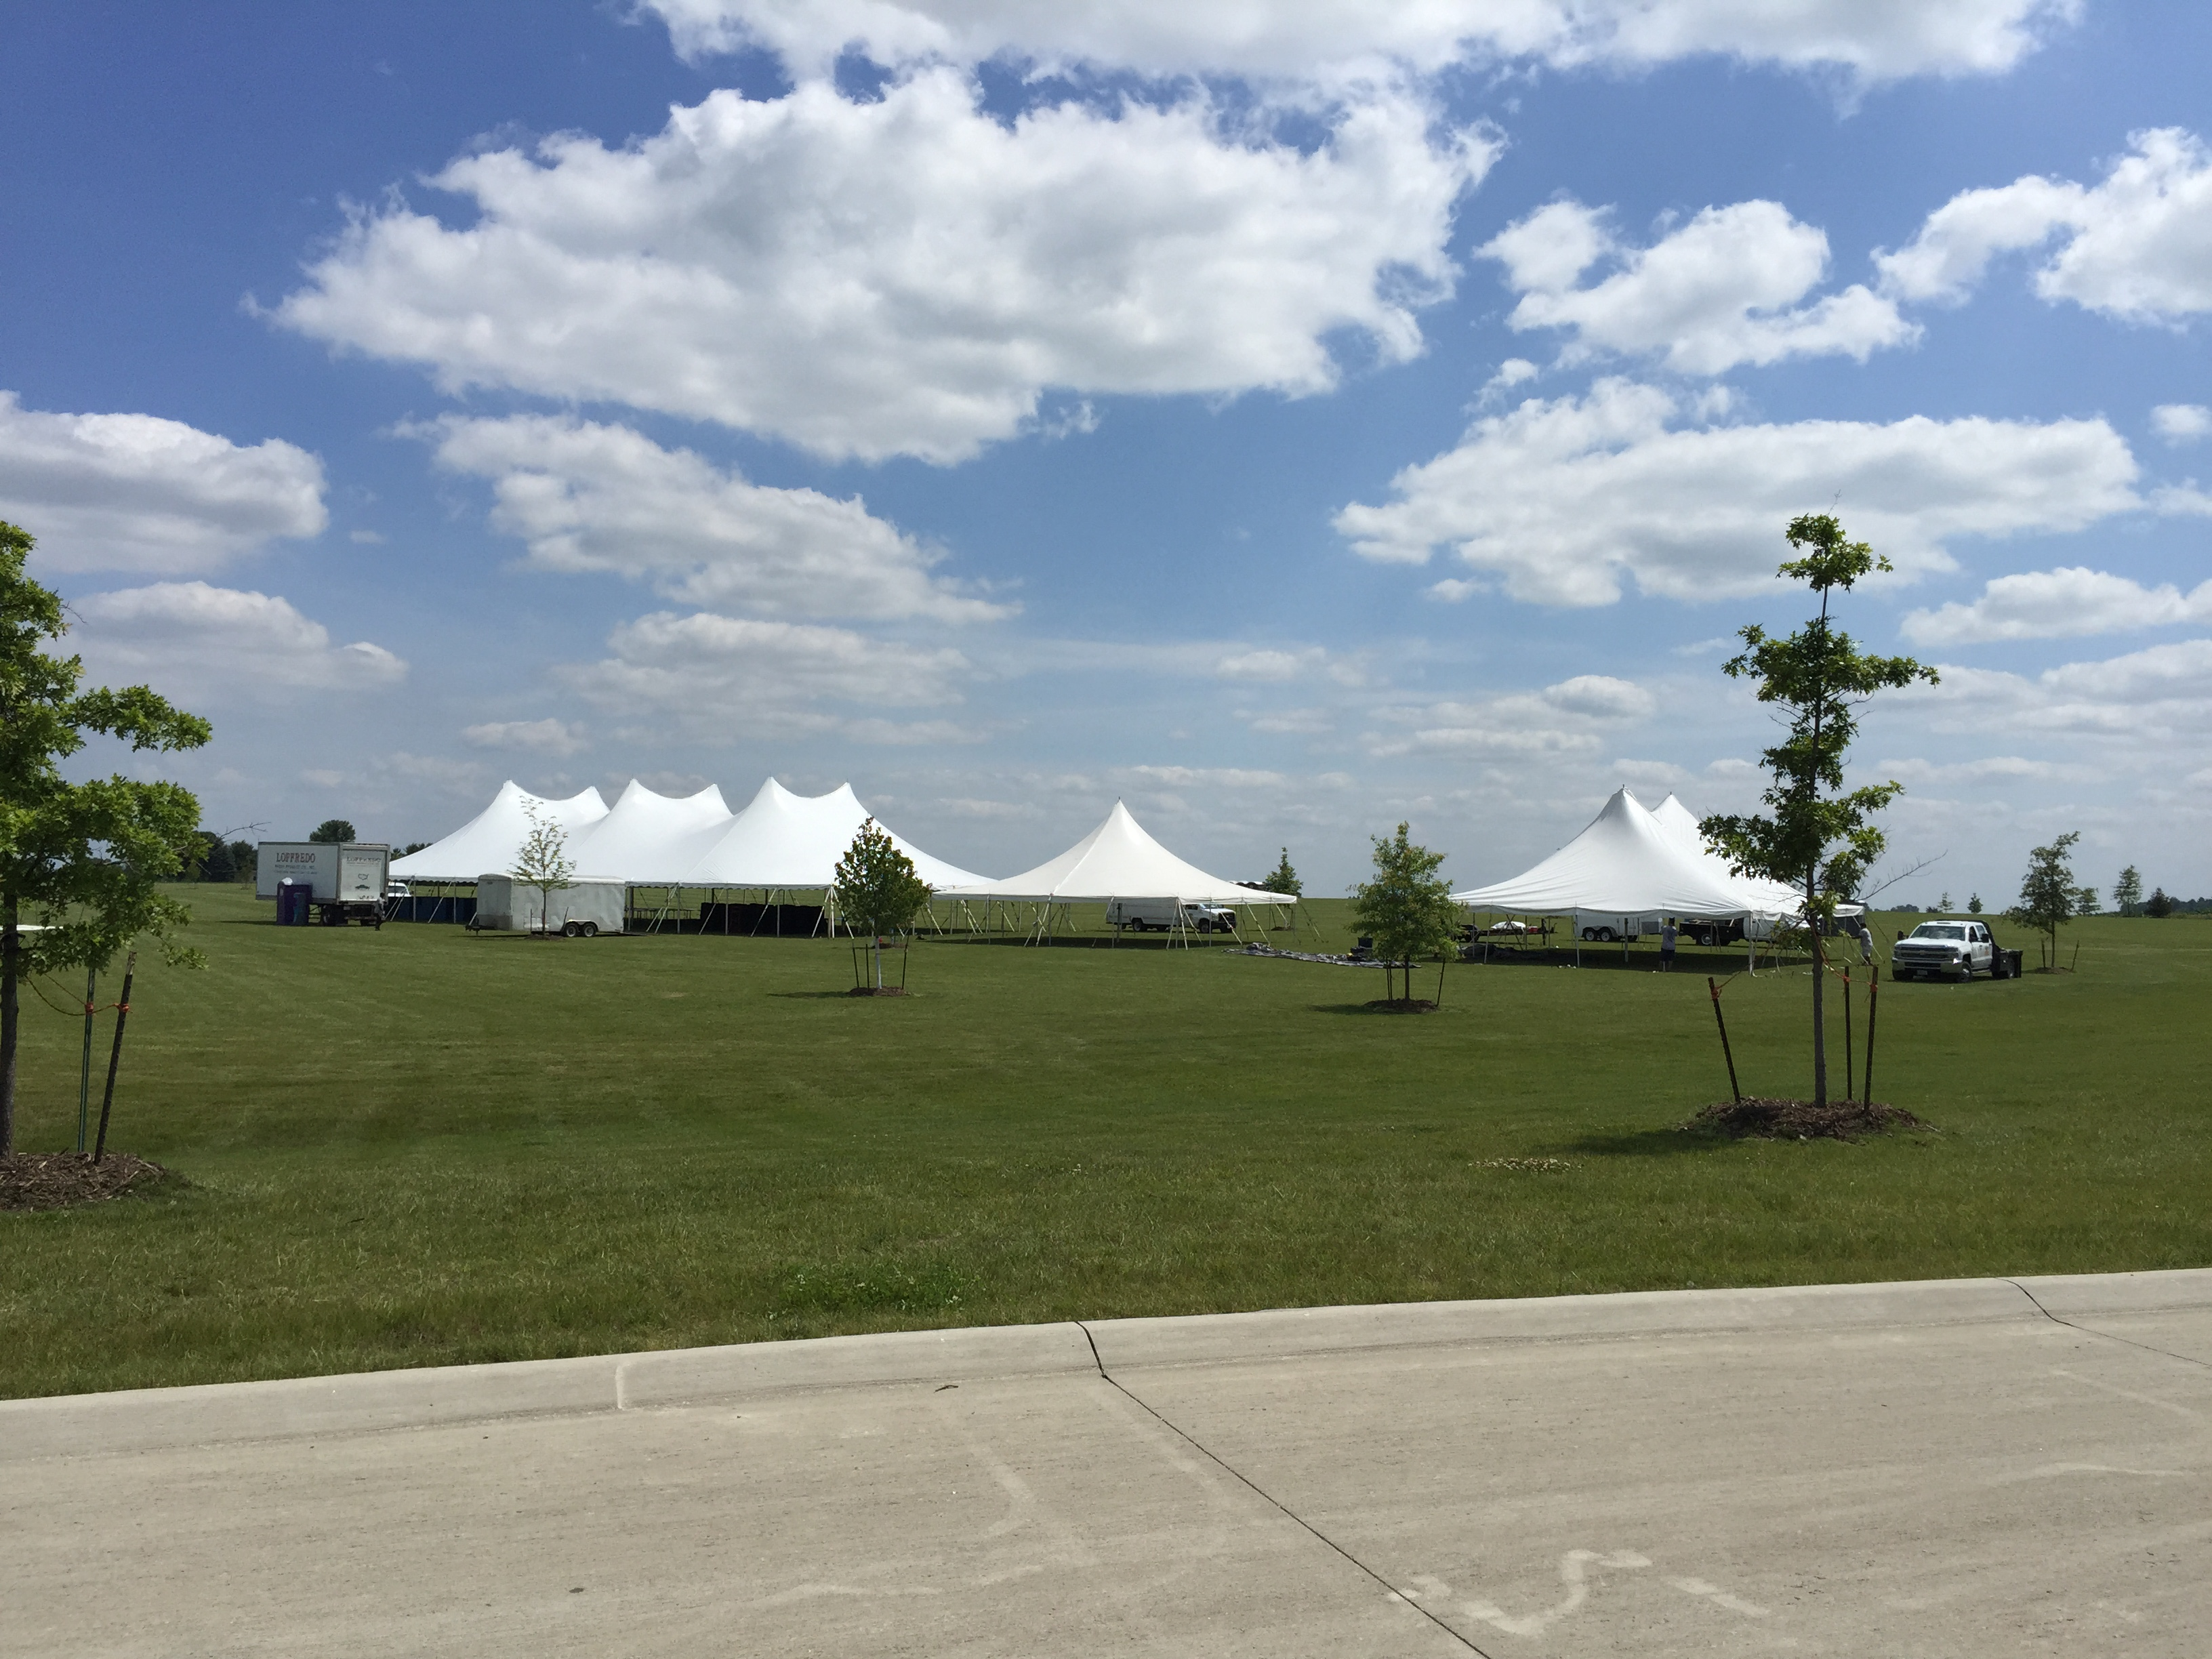 Outdoor festival tent set-up for Blues and BBQ & Festival set-up for Blues u0026 Barbecue in North Liberty IA